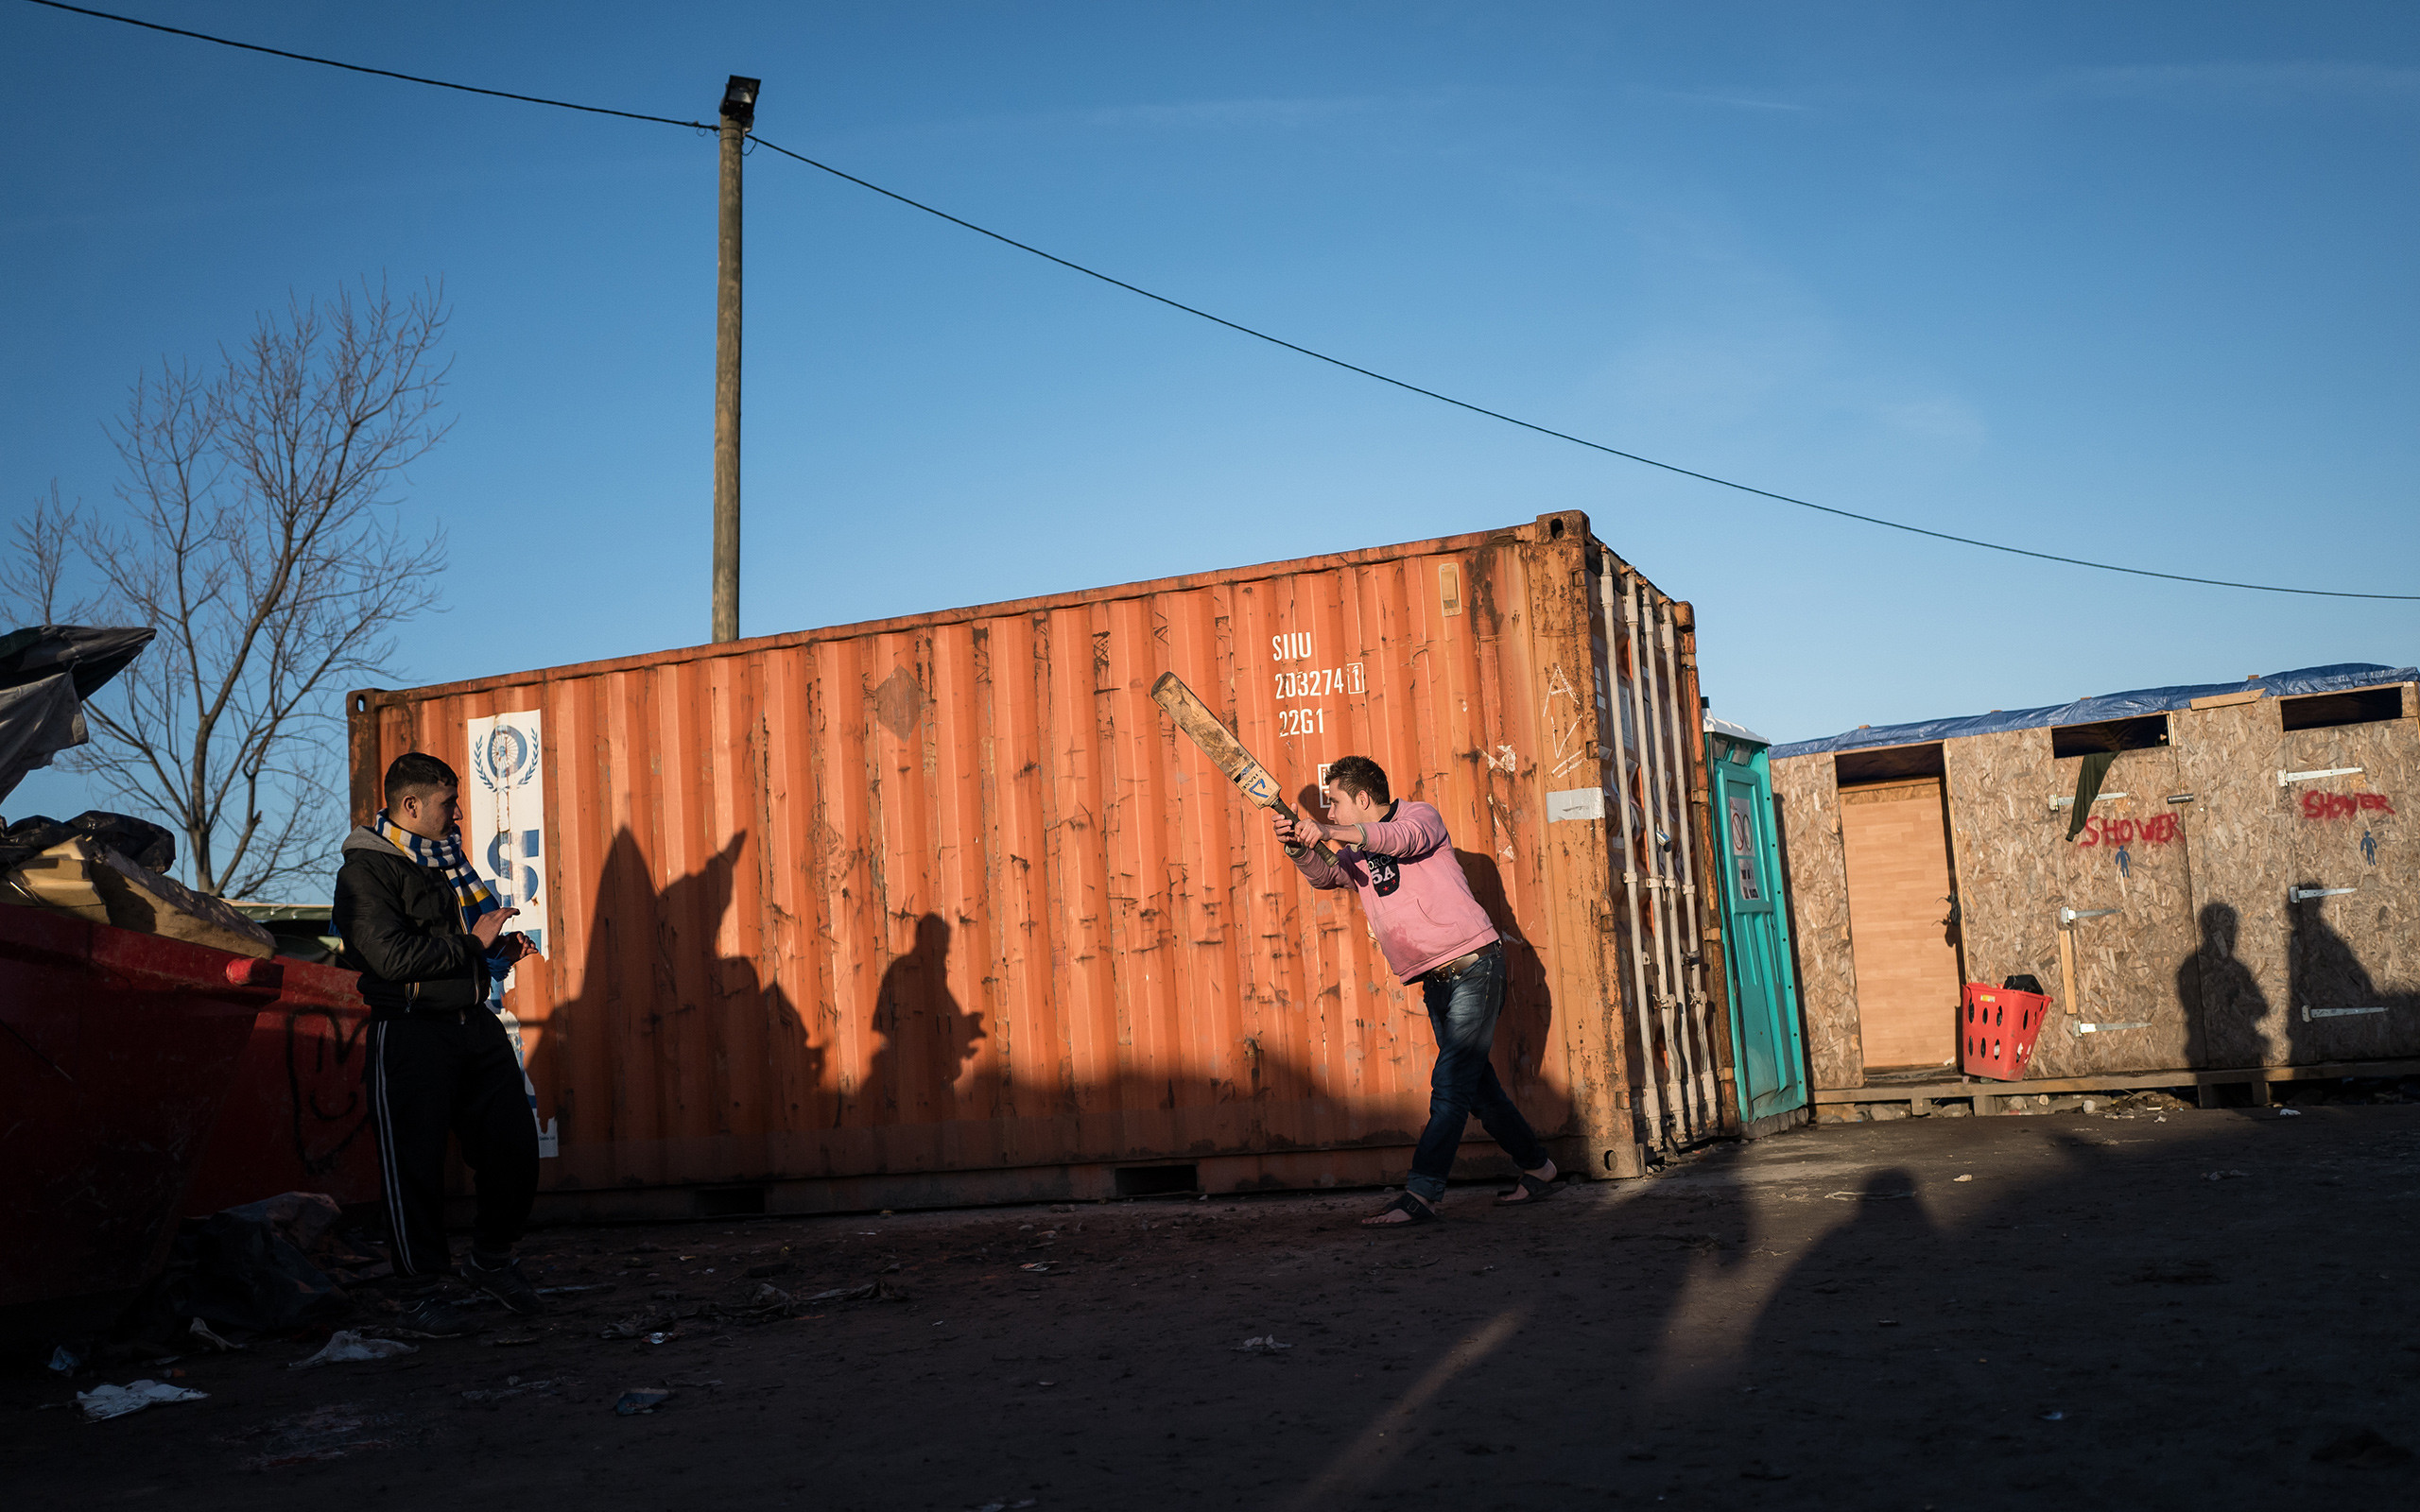 AFGHAN TEENAGERS PLAY CRICKET AGAINST A SHIPPING CONTAINER IN THE CALAIS 'JUNGLE', IN AN AREA OF THE CAMP KNOWN AS 'AFGHAN SQUARE'